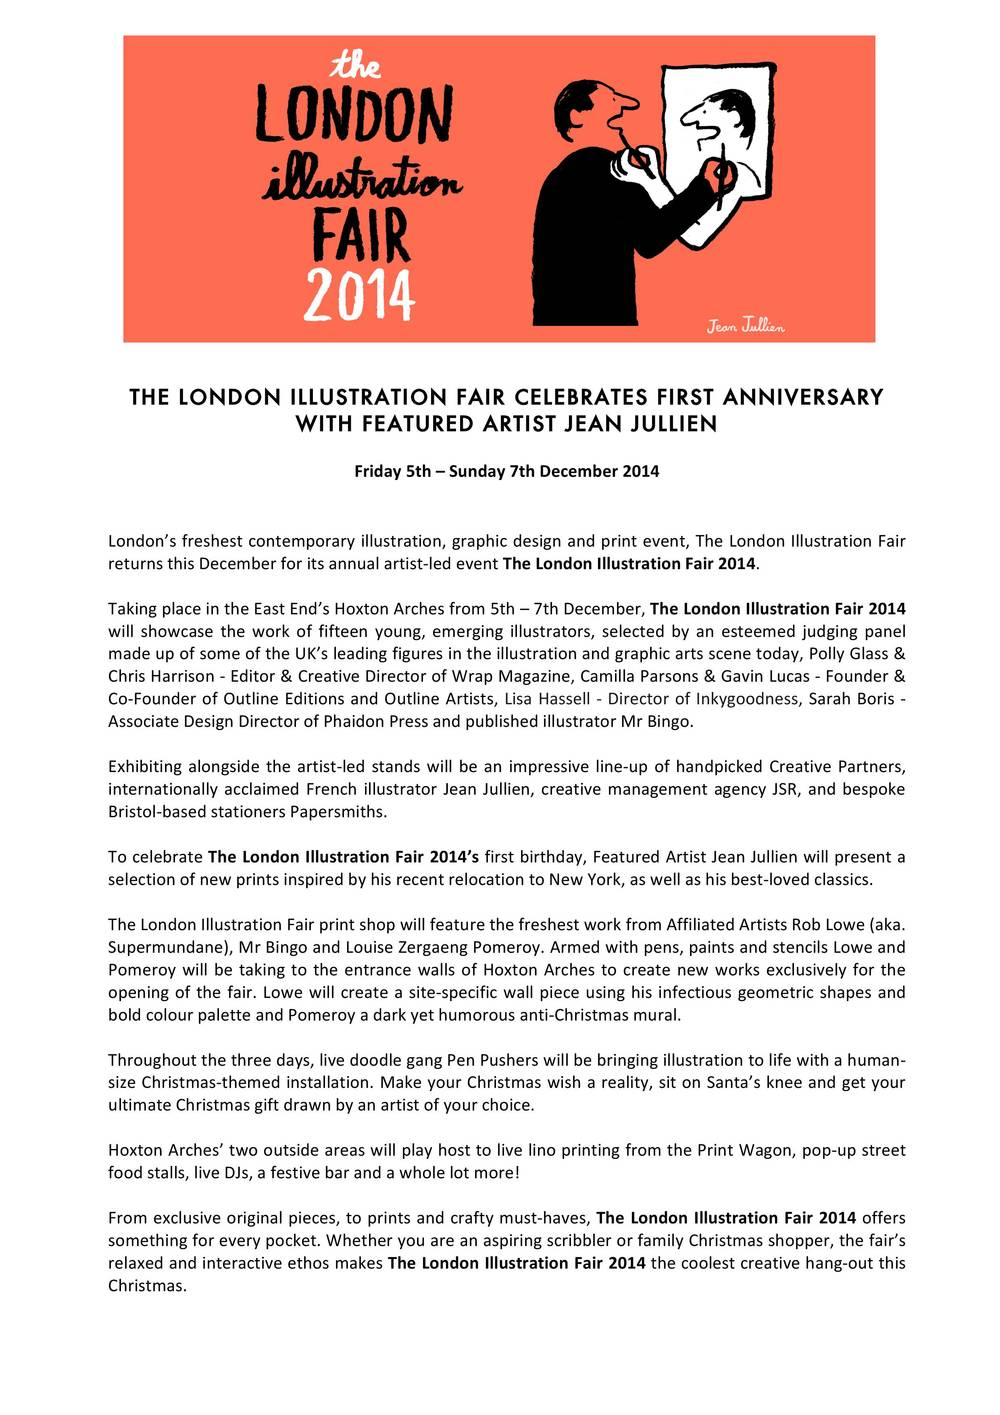 The London Illustration Fair 2014-Press Release.jpg